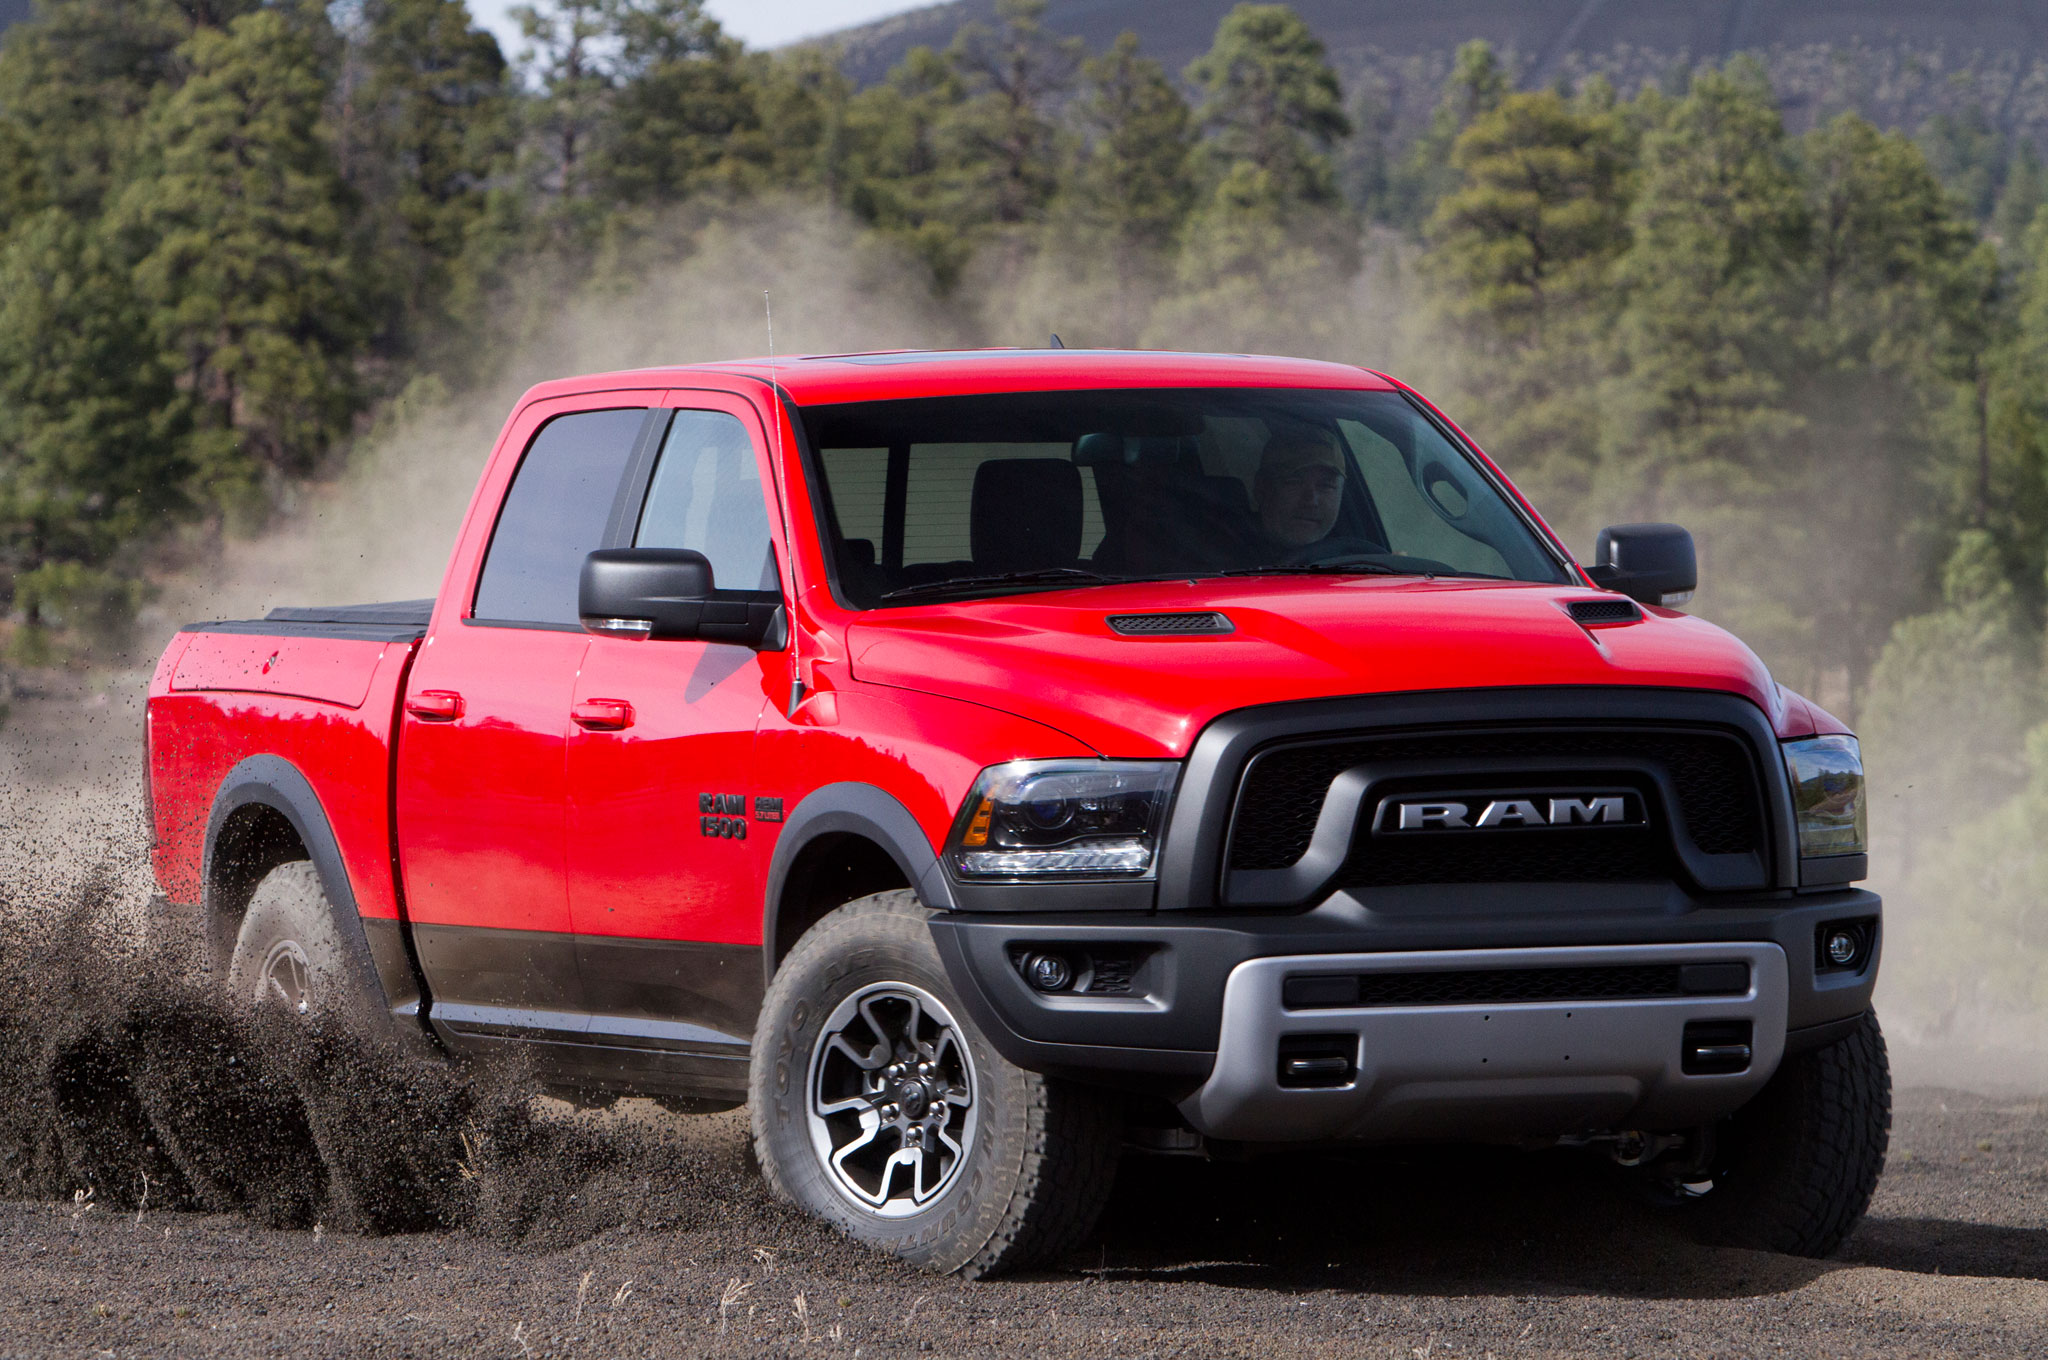 2016 ram 1500 rebel crew cab 4x4 review. Black Bedroom Furniture Sets. Home Design Ideas